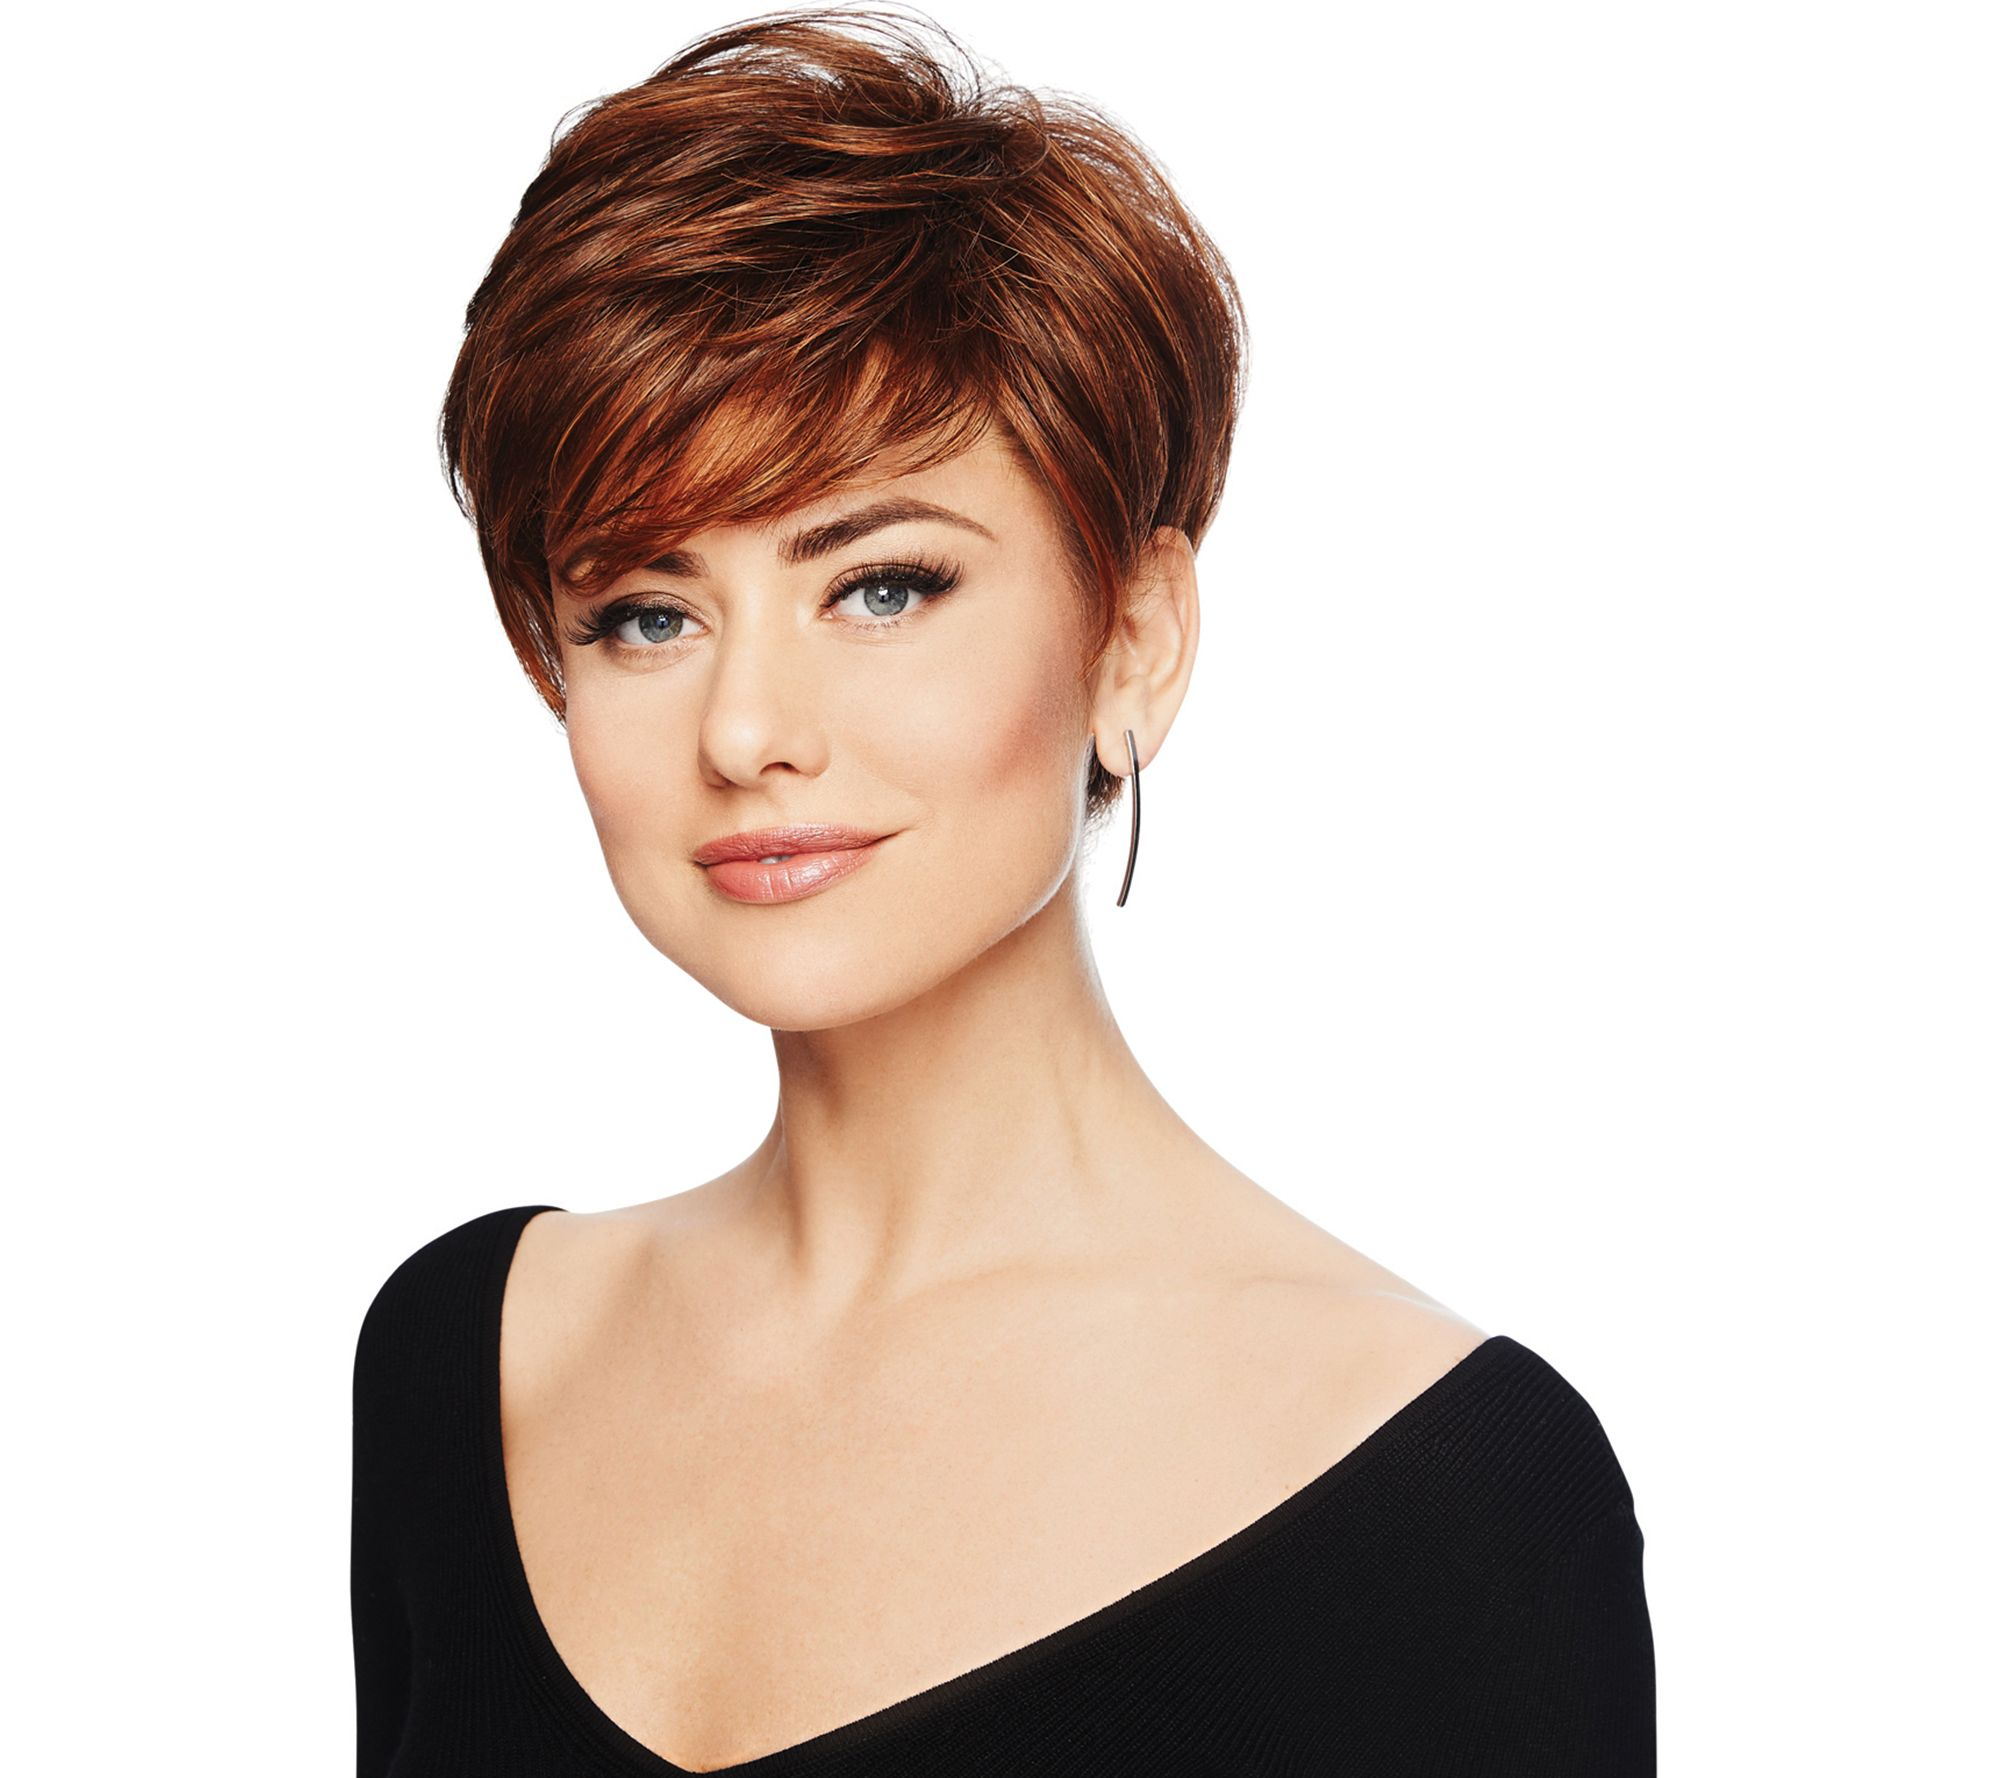 Hairdo by hairuwear beauty qvc hairdo short volume perfect pixie cut wig a301637 pmusecretfo Image collections